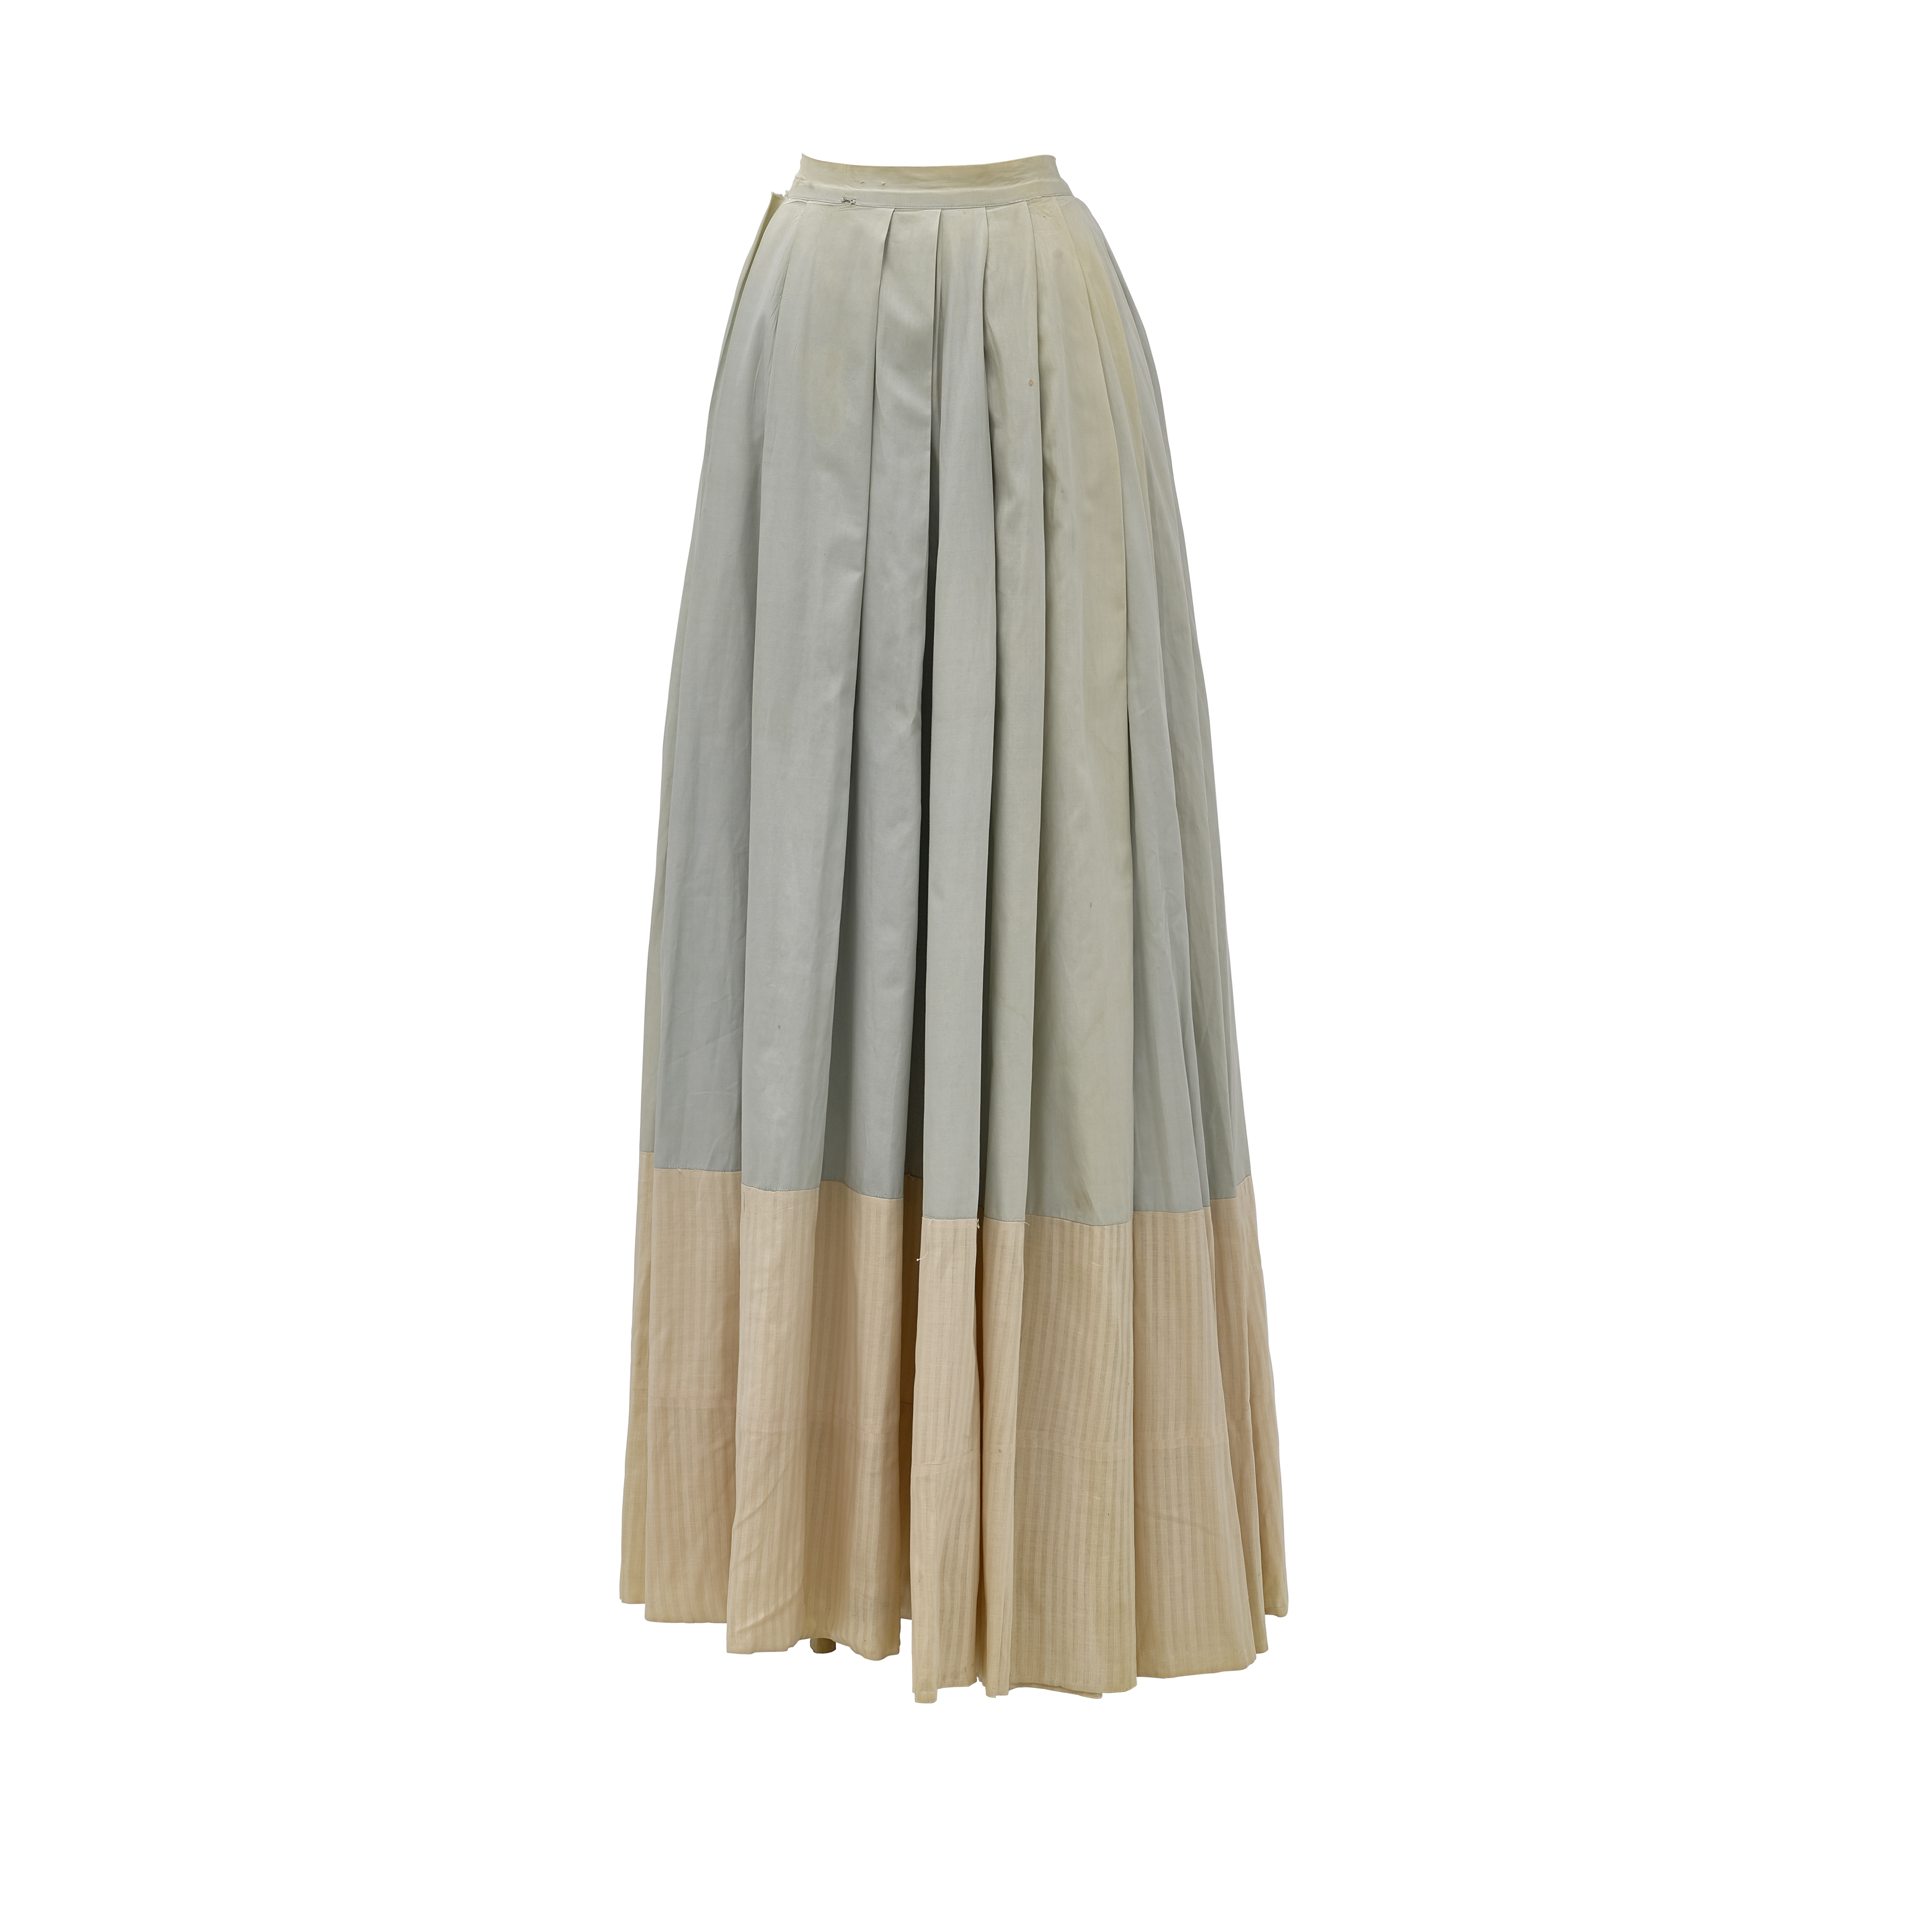 An Ann Rutherford skirt from Gone With the Wind - Image 5 of 6